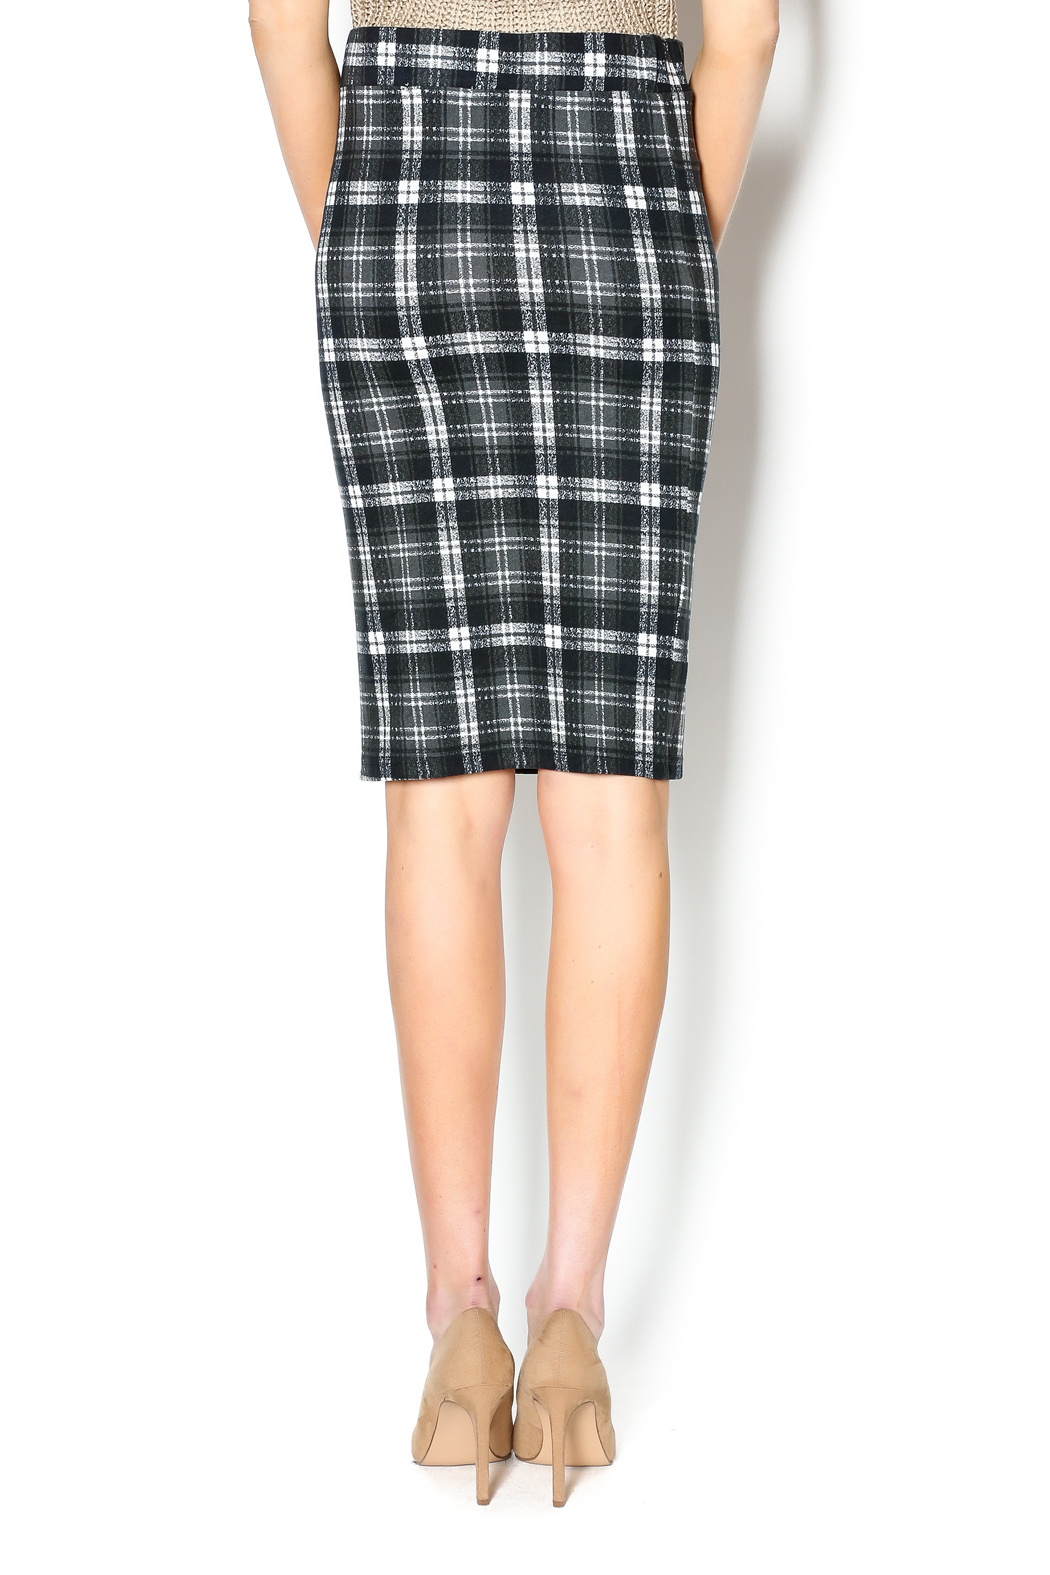 Bishop + Young Plaid Pencil Skirt - Back Cropped Image